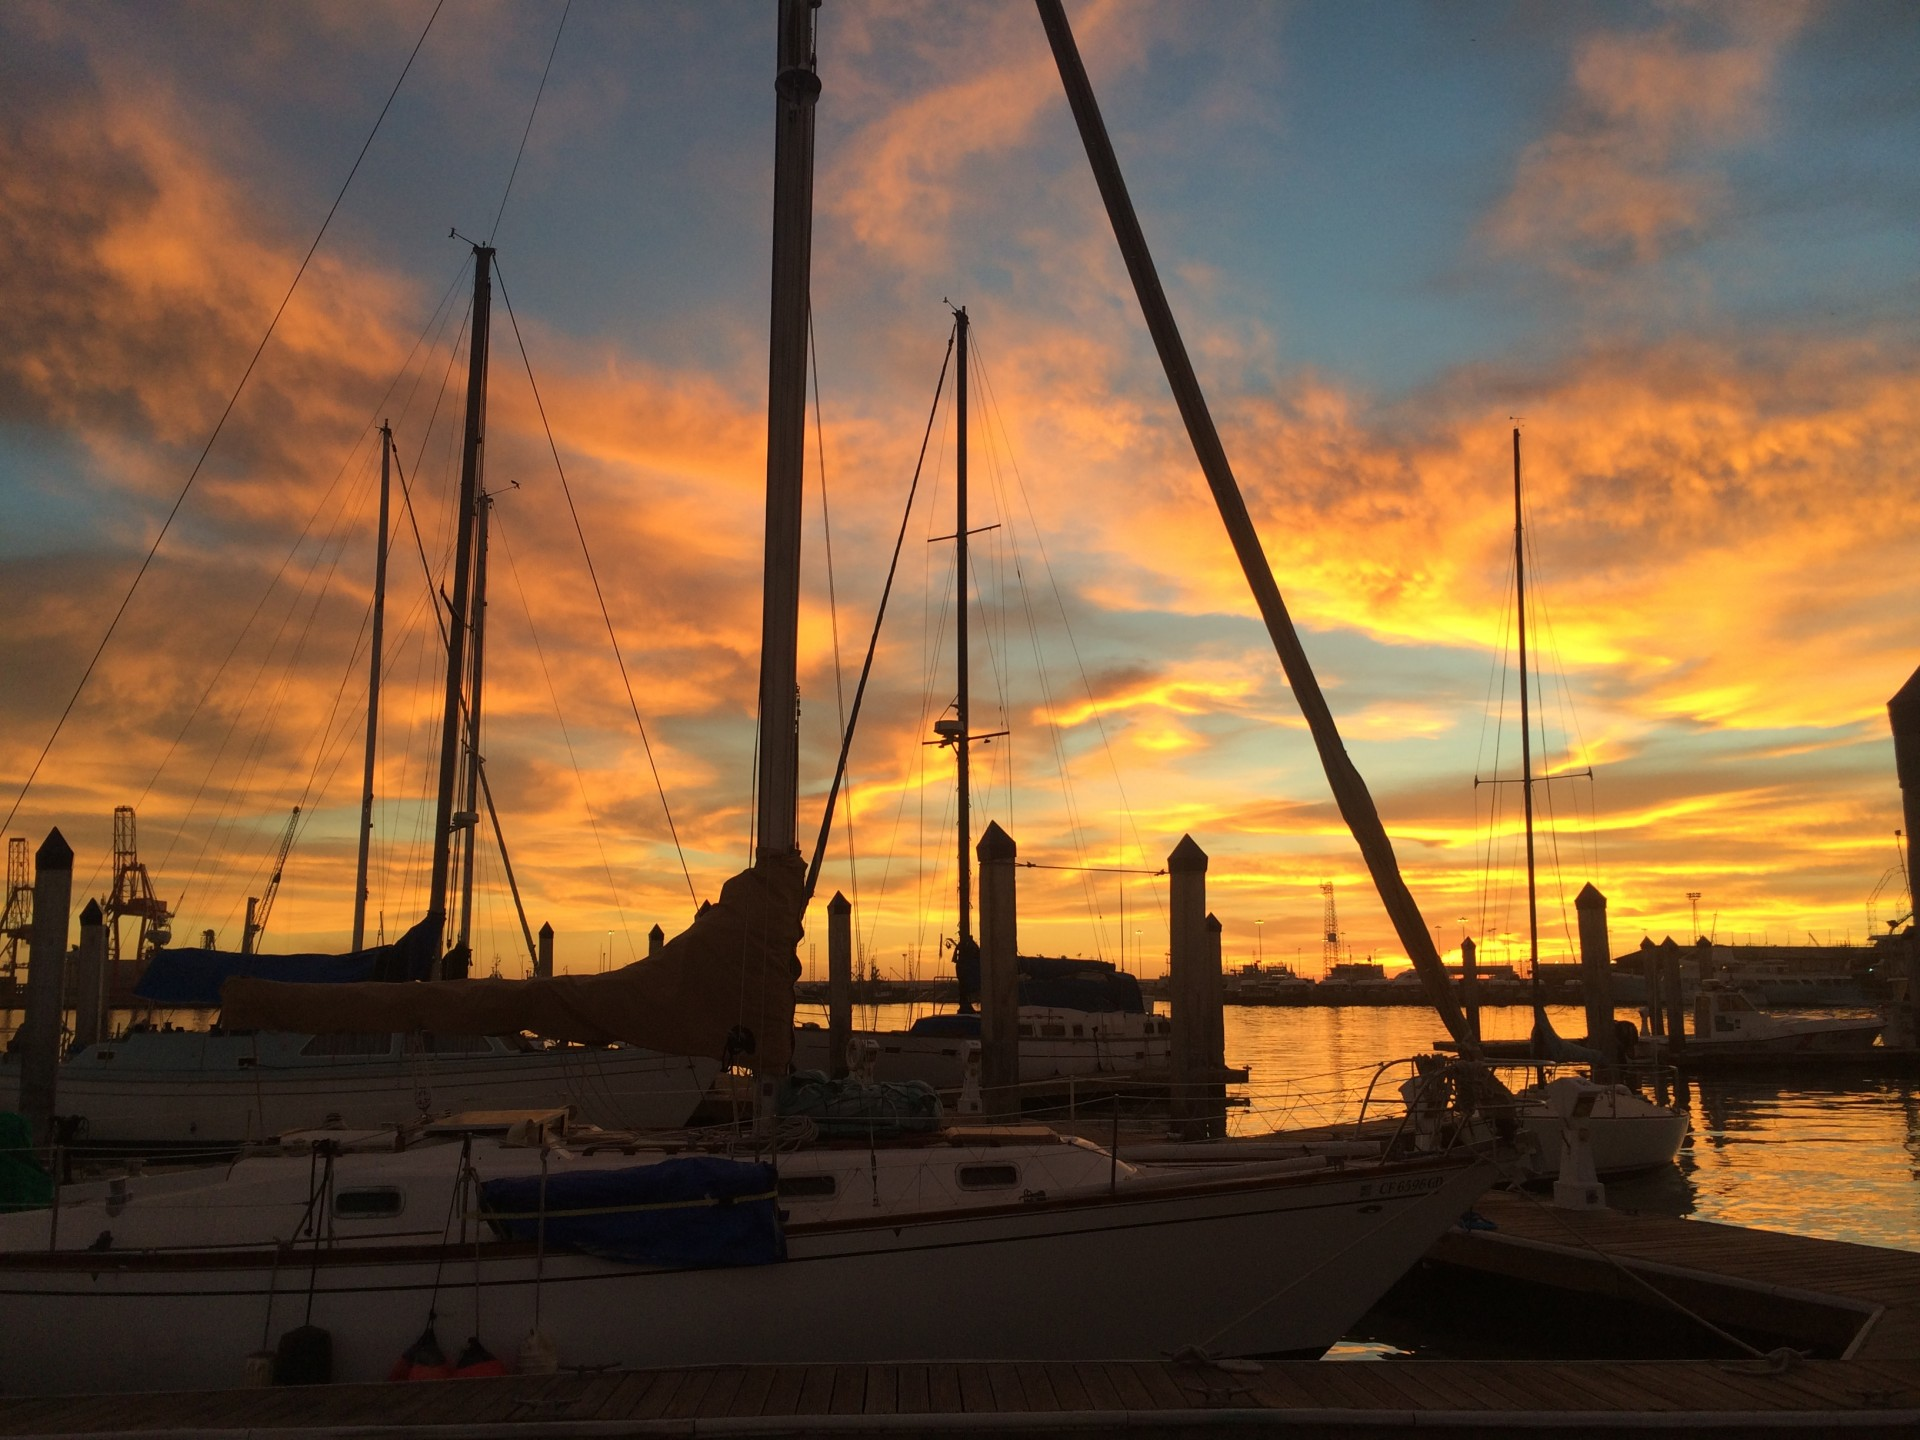 A beautiful sunset caught us pleasantly off guard in the Ensenada harbor.